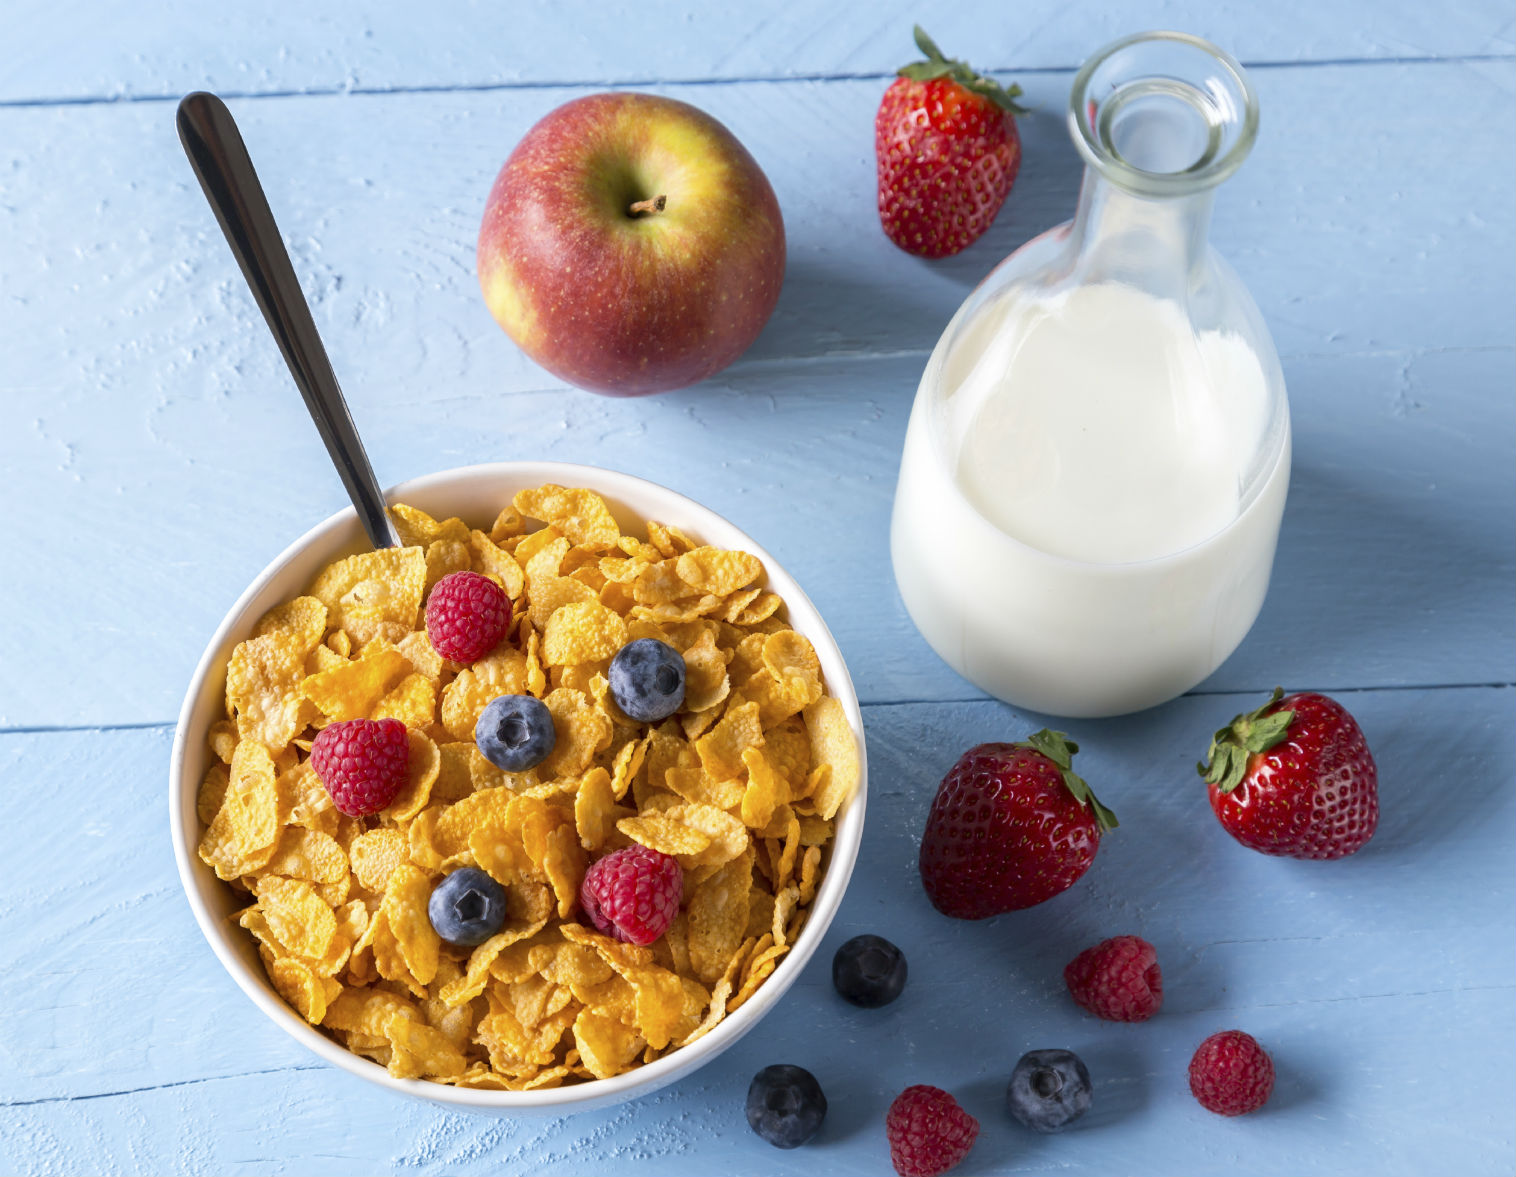 The unbalancing act of cereals